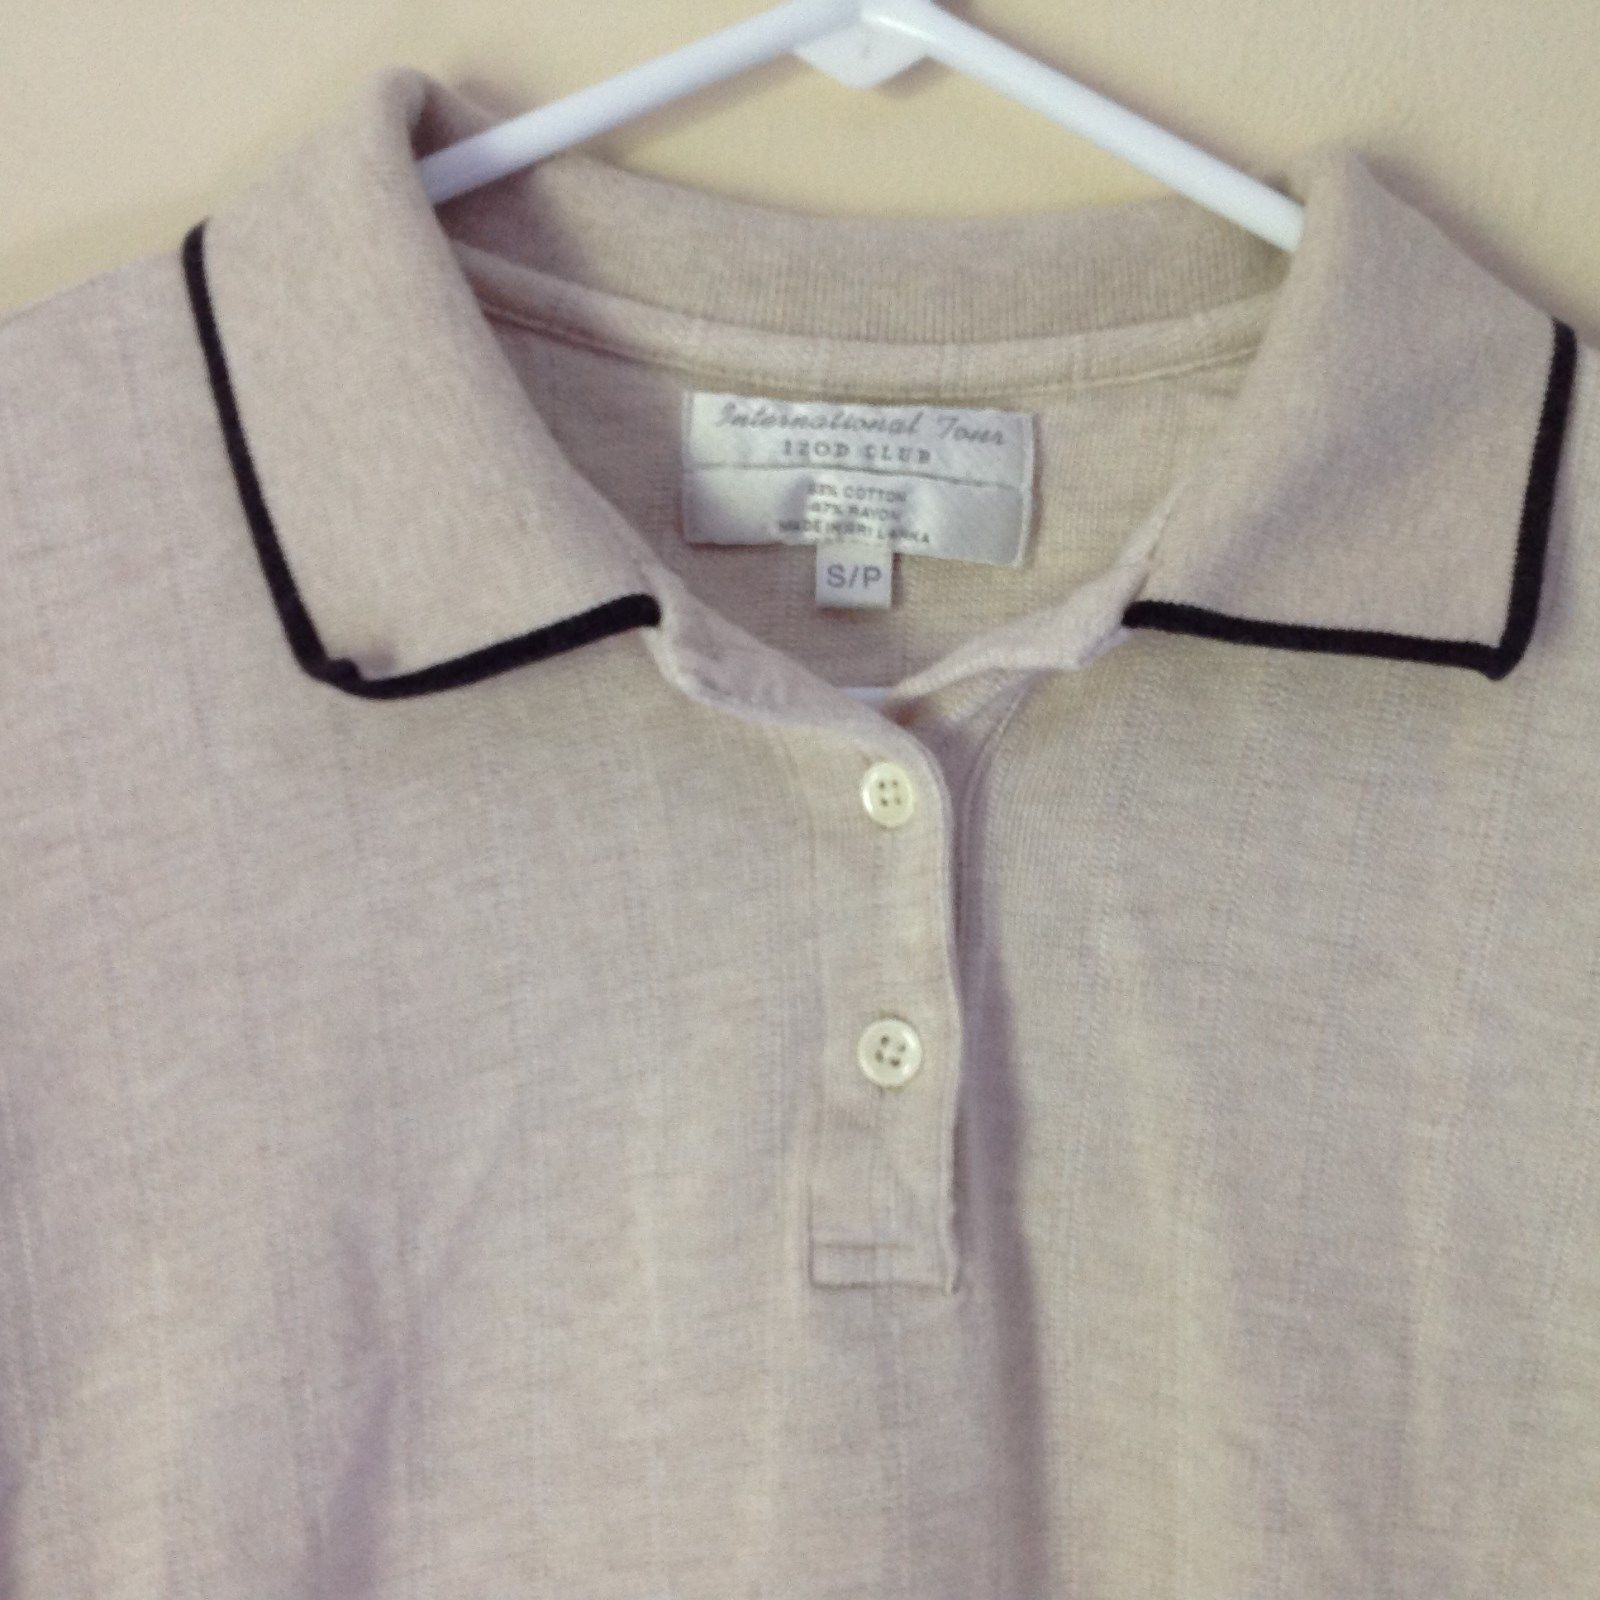 International Tour IZOD Club Beige with Black Accents Polo Shirt Size Small